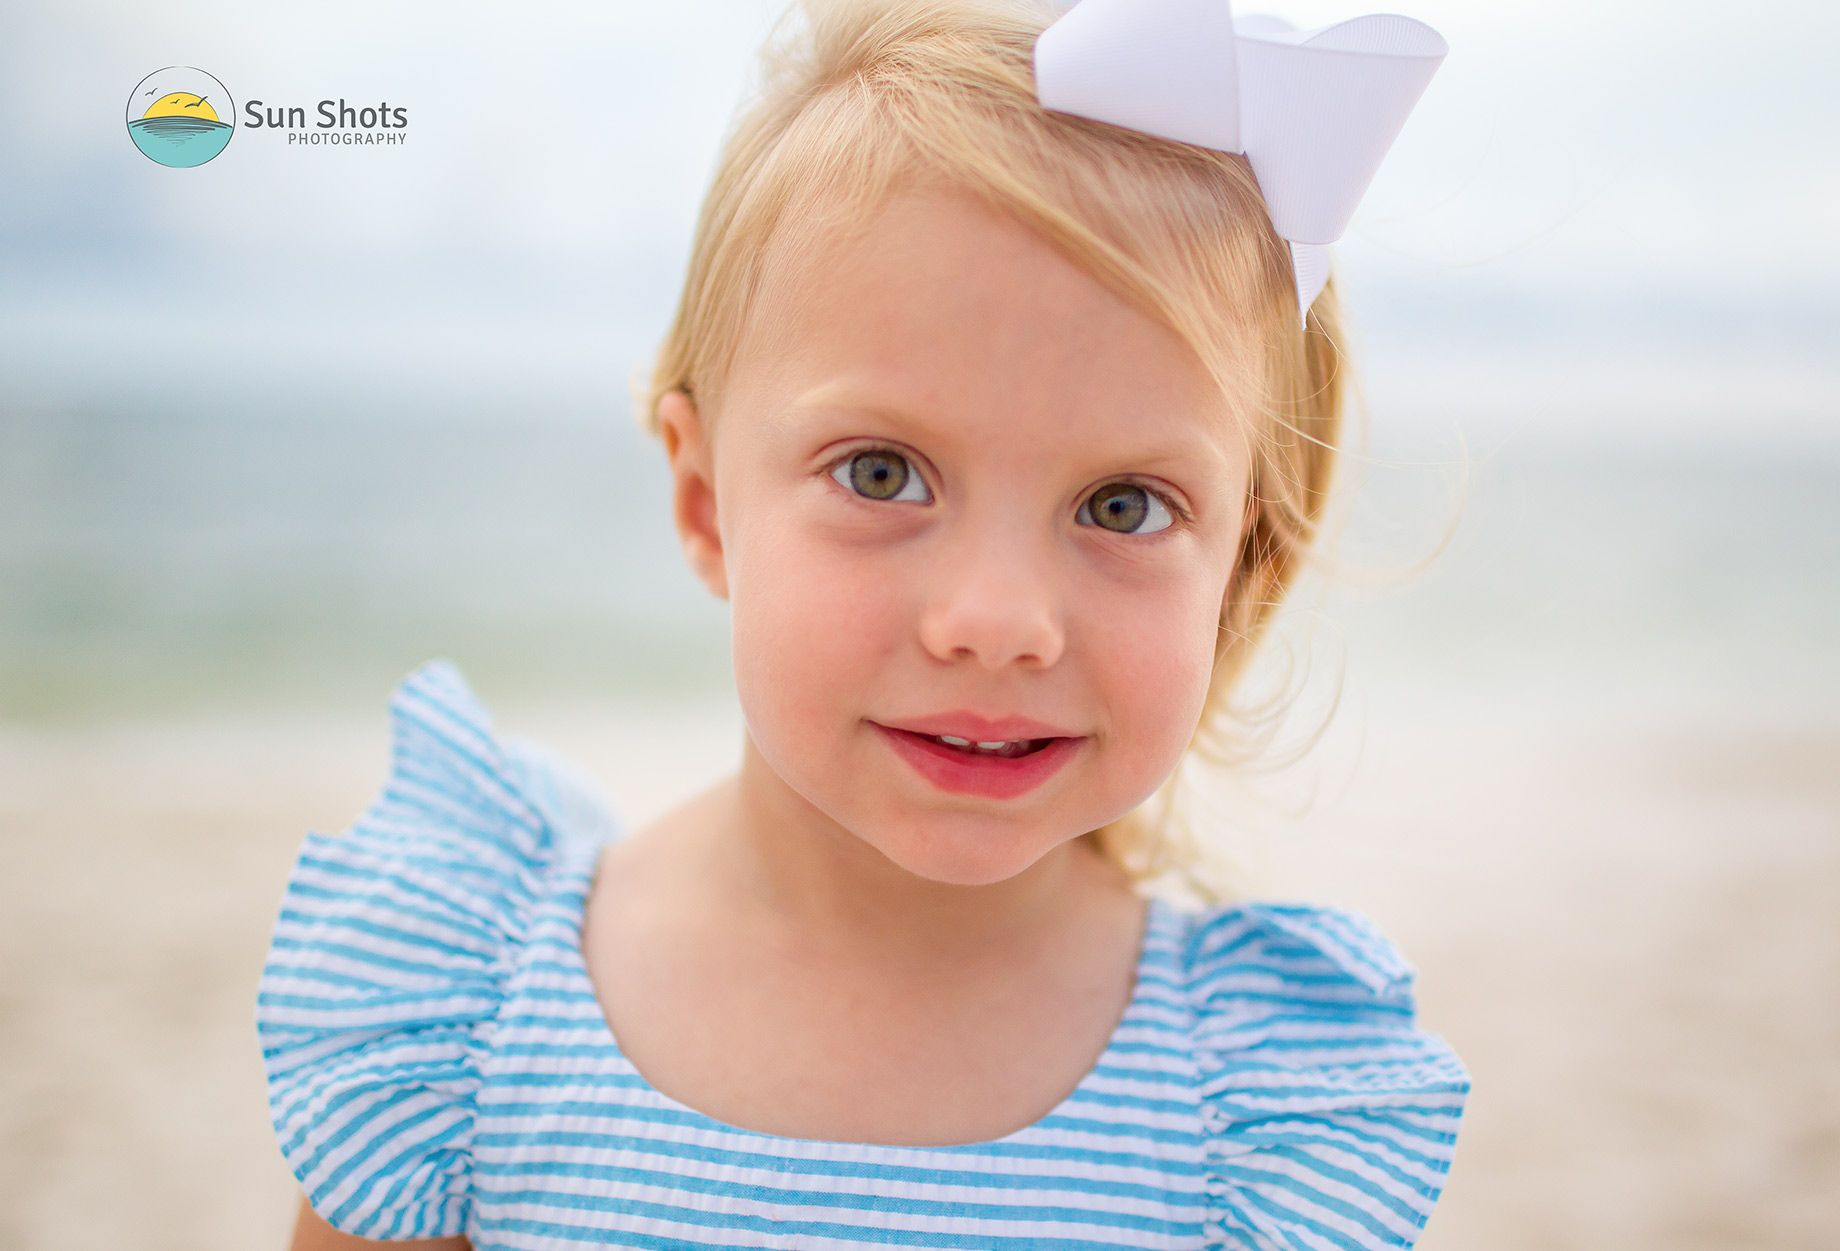 Image of young girl looking into camera